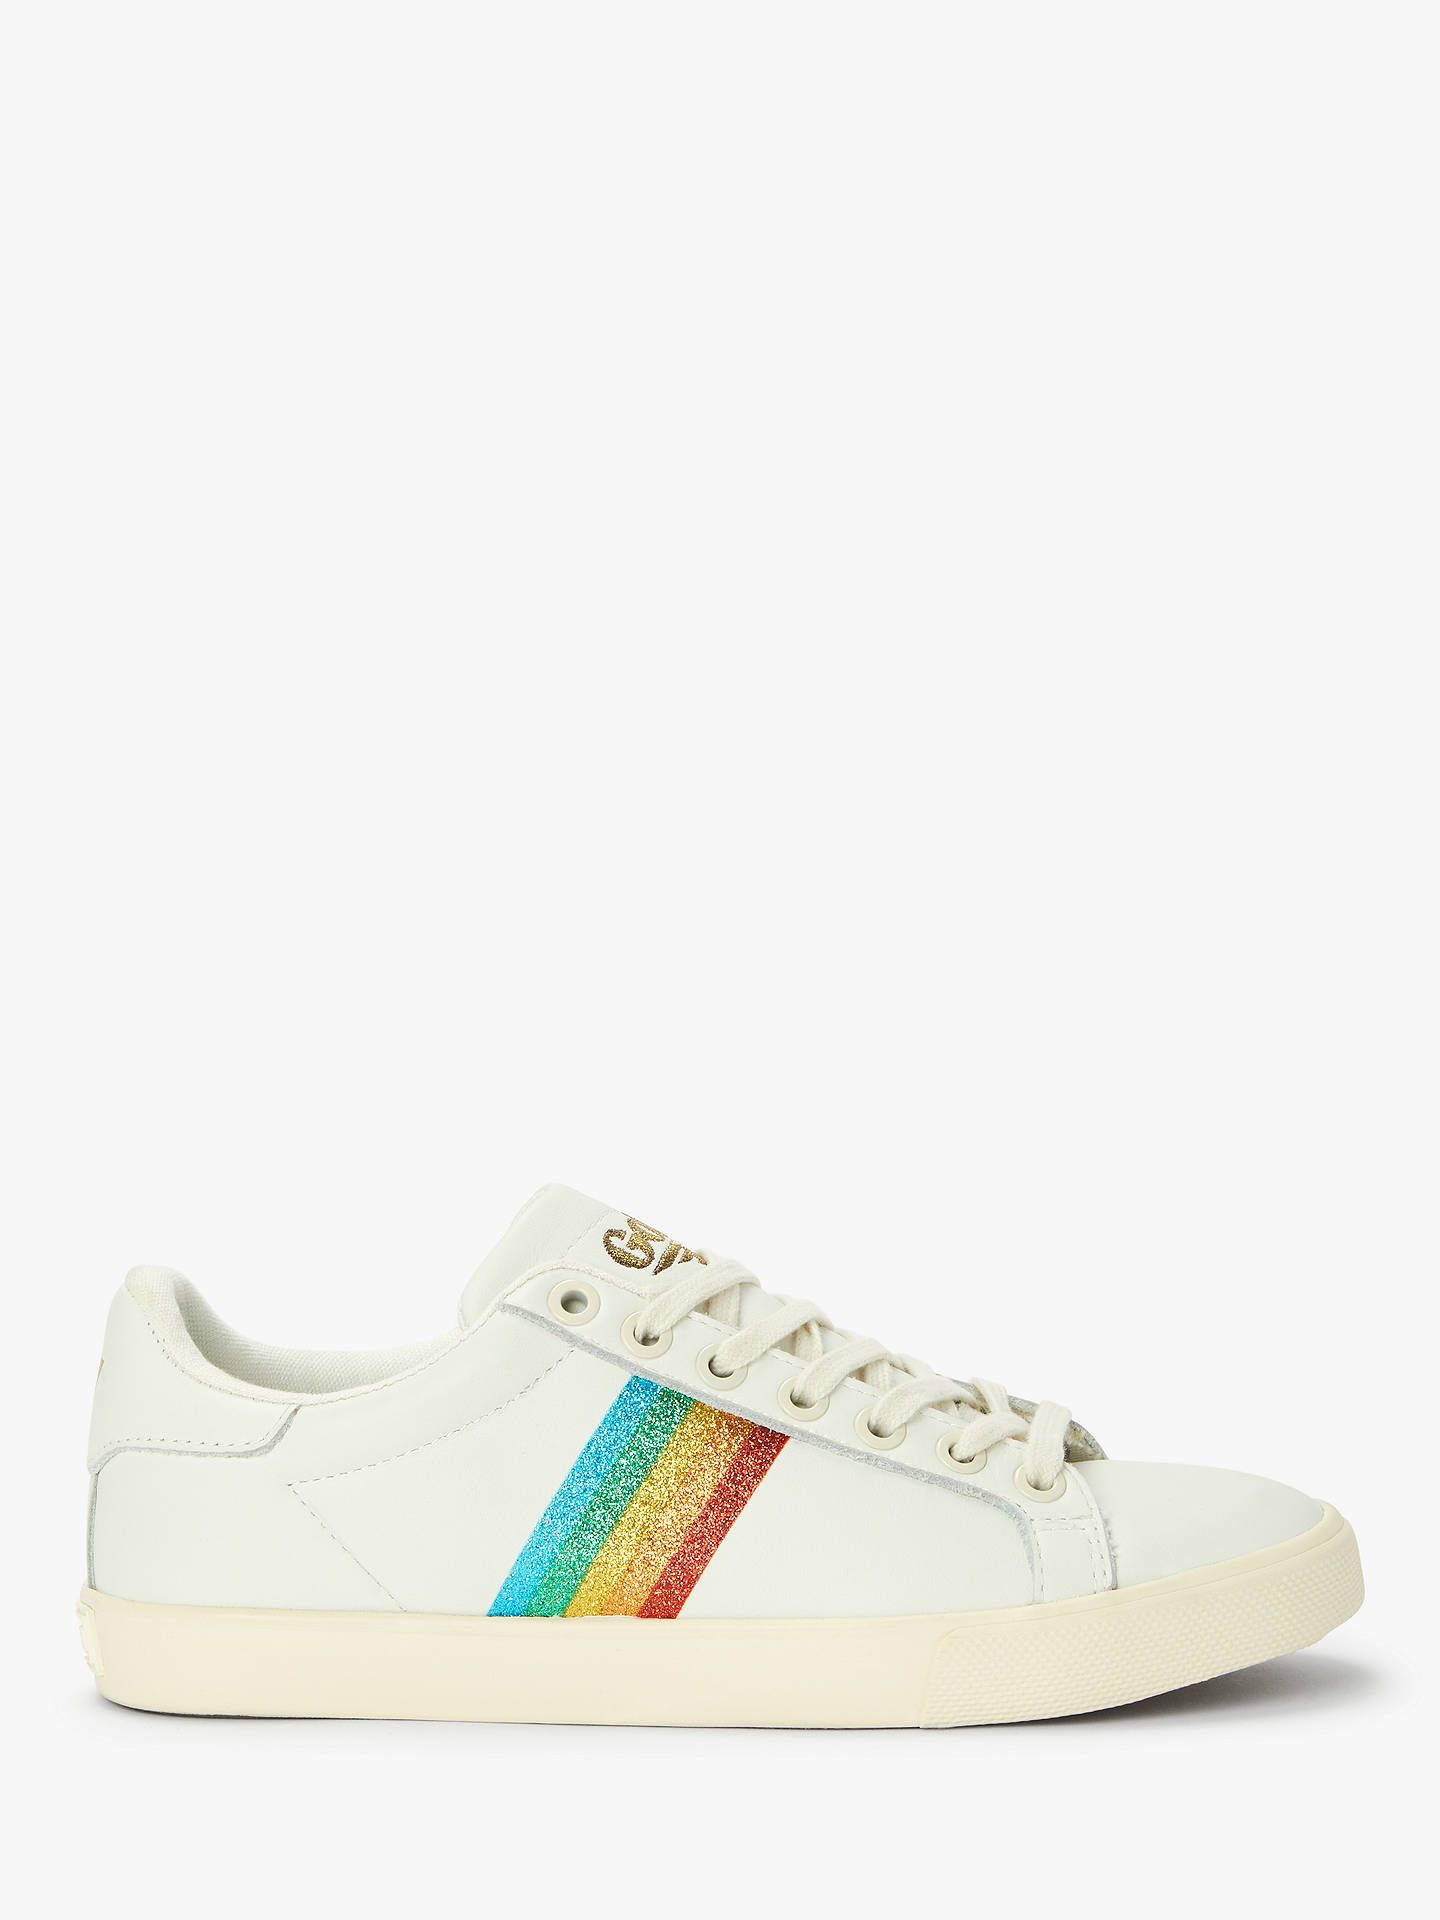 Gola Orchid Rainbow Low Top Trainers